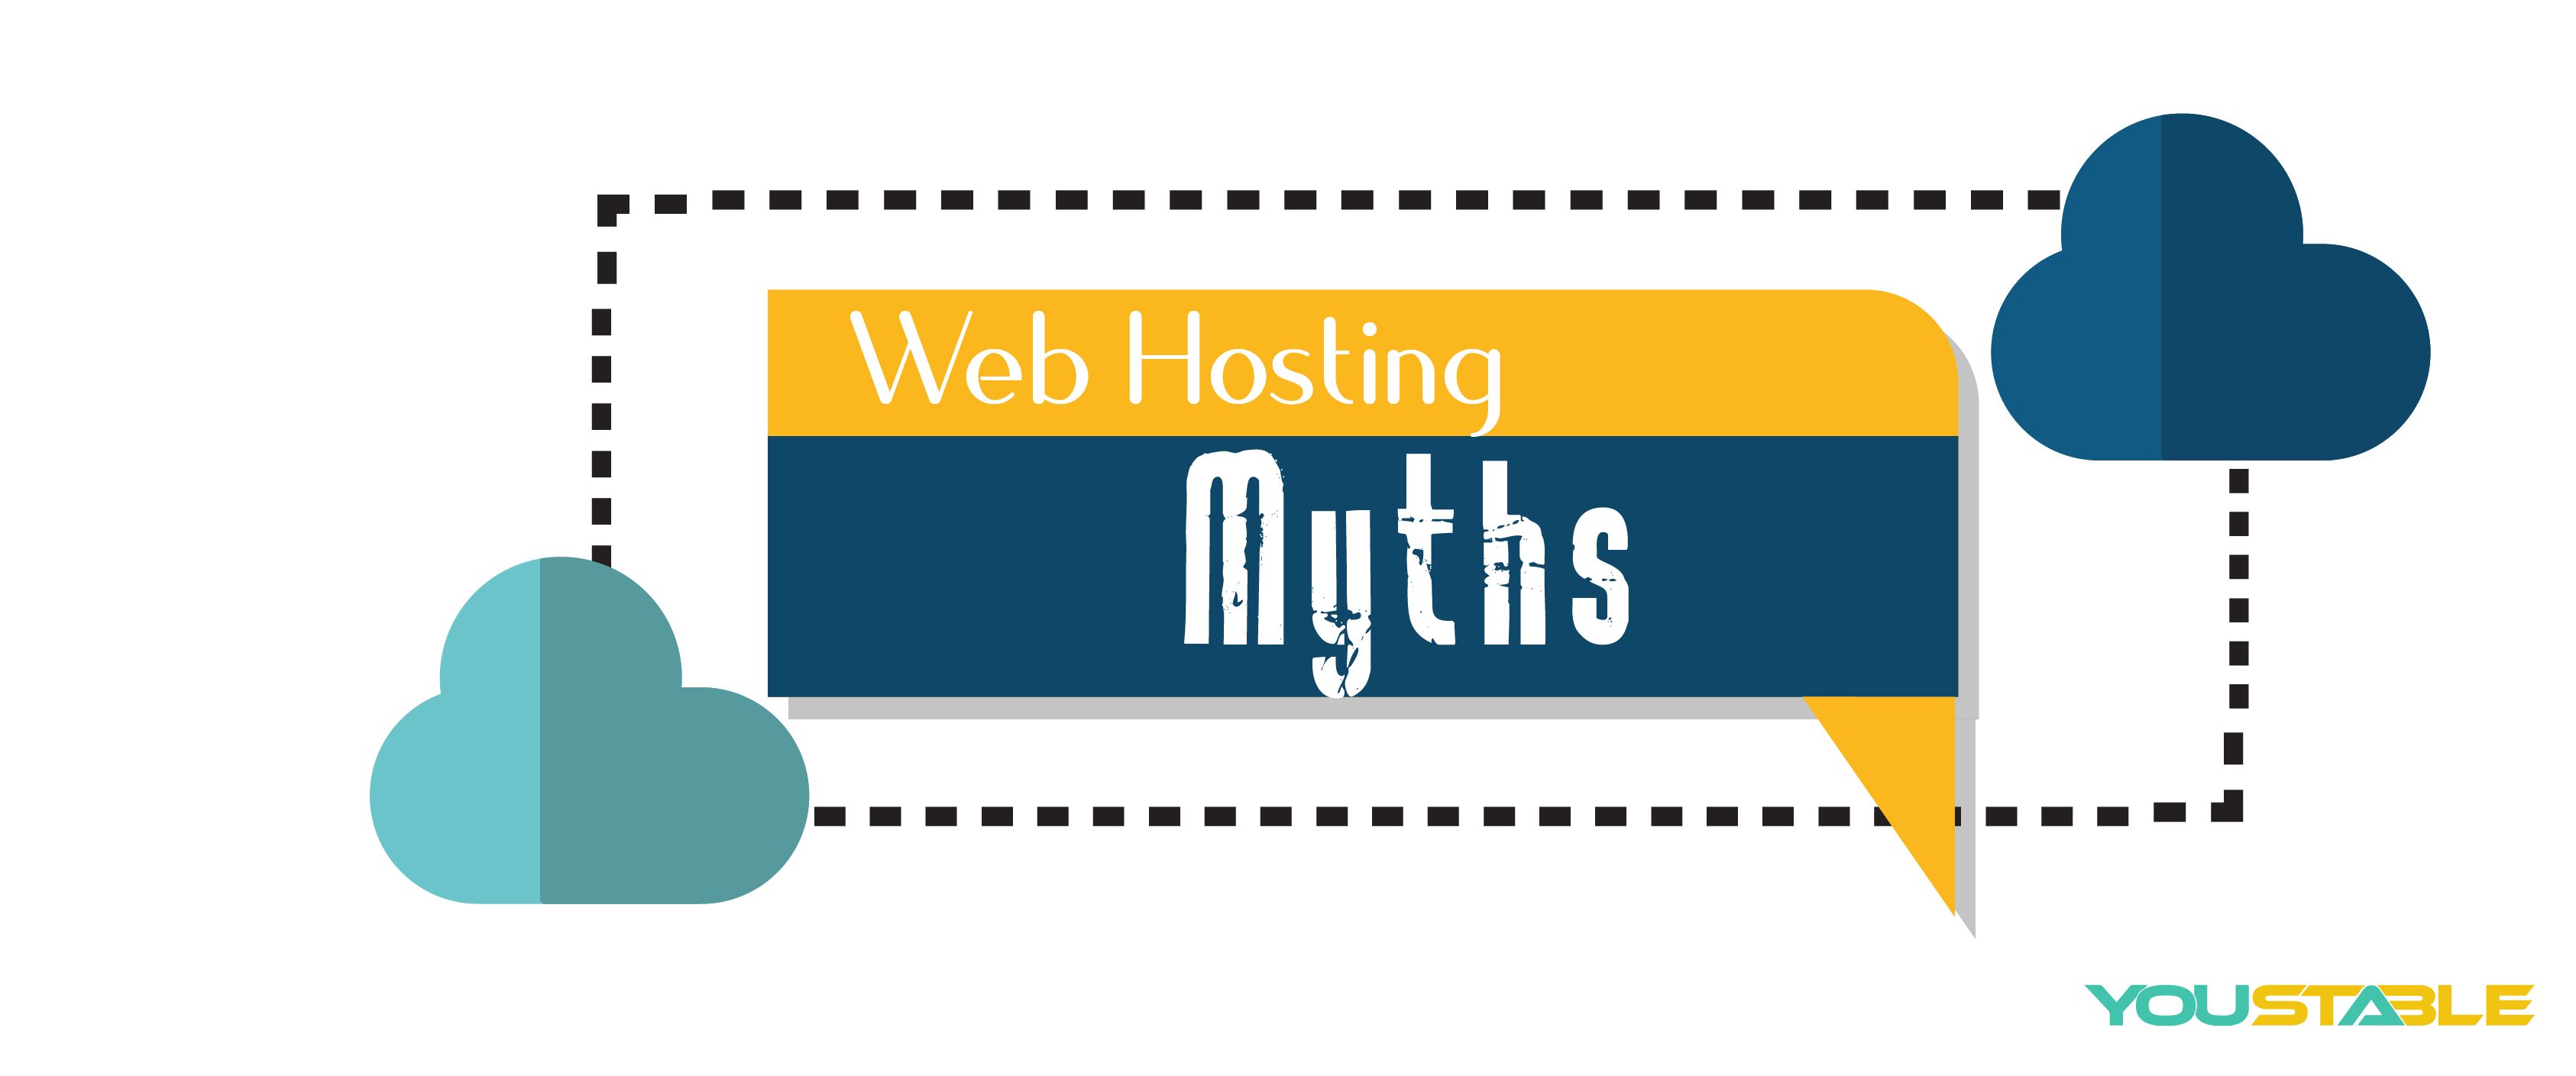 web hosting myths,seo company in lucknow,web hosting company in lucknow